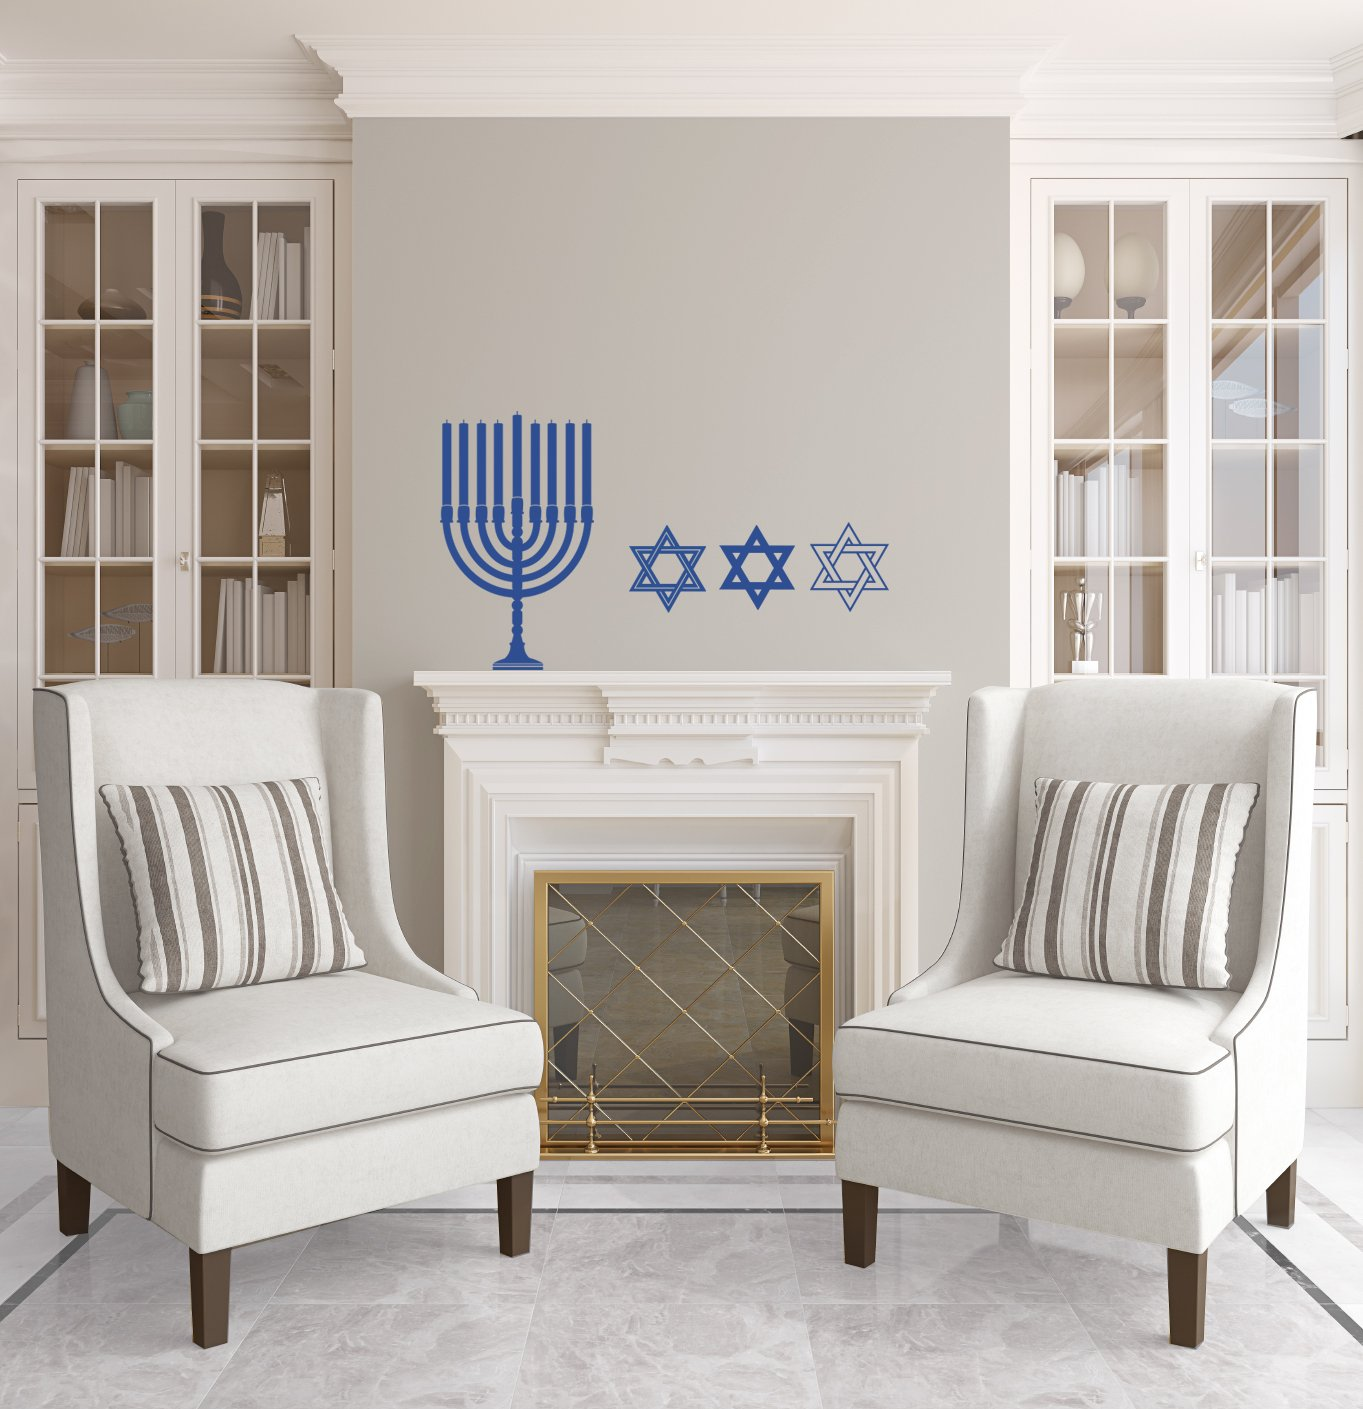 Menorah and Star of David Cluster - Azure Blue - Vinyl Wall Art Decal for Homes, Offices, Kids Rooms, Nurseries, Schools, High Schools, Colleges, Universities by Dana Decals (Image #2)